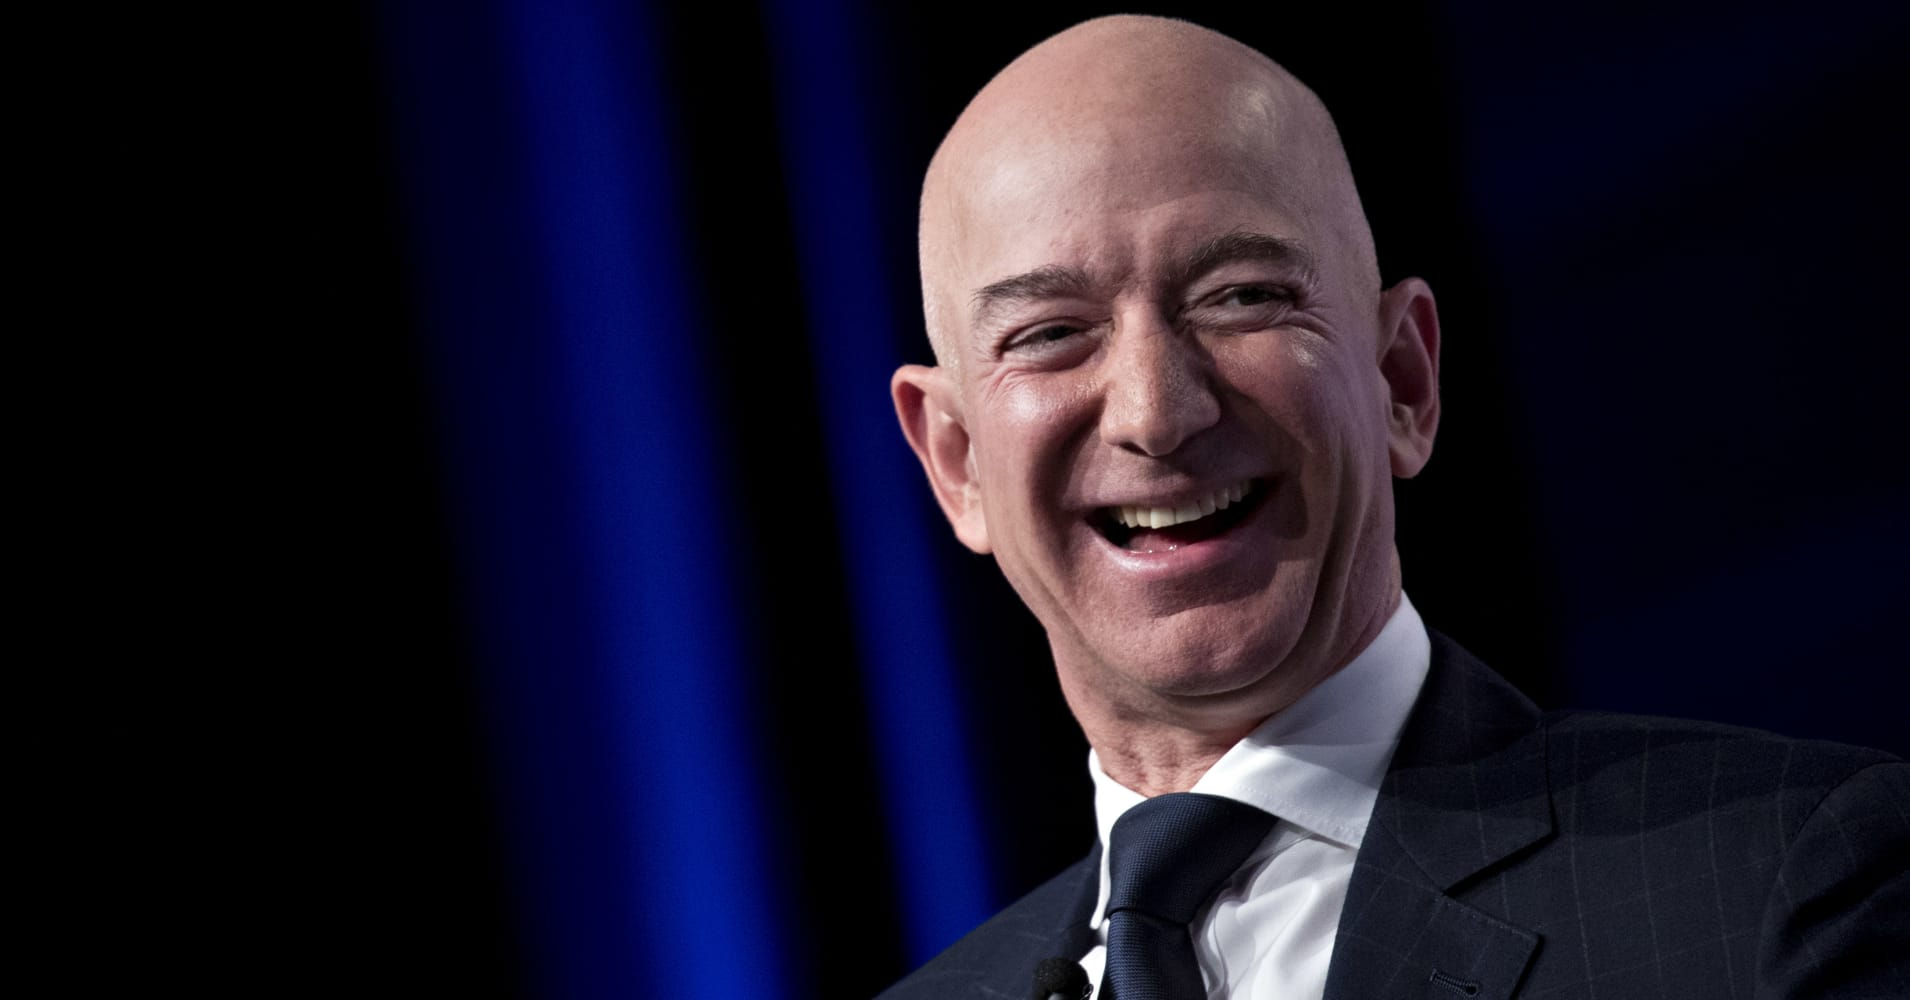 Amazon CEO Jeff Bezos laughs at a discussion at the Air Force Association's Air, Space and Cyber Conference in National Harbor, Md., Sept. 19, 2018.